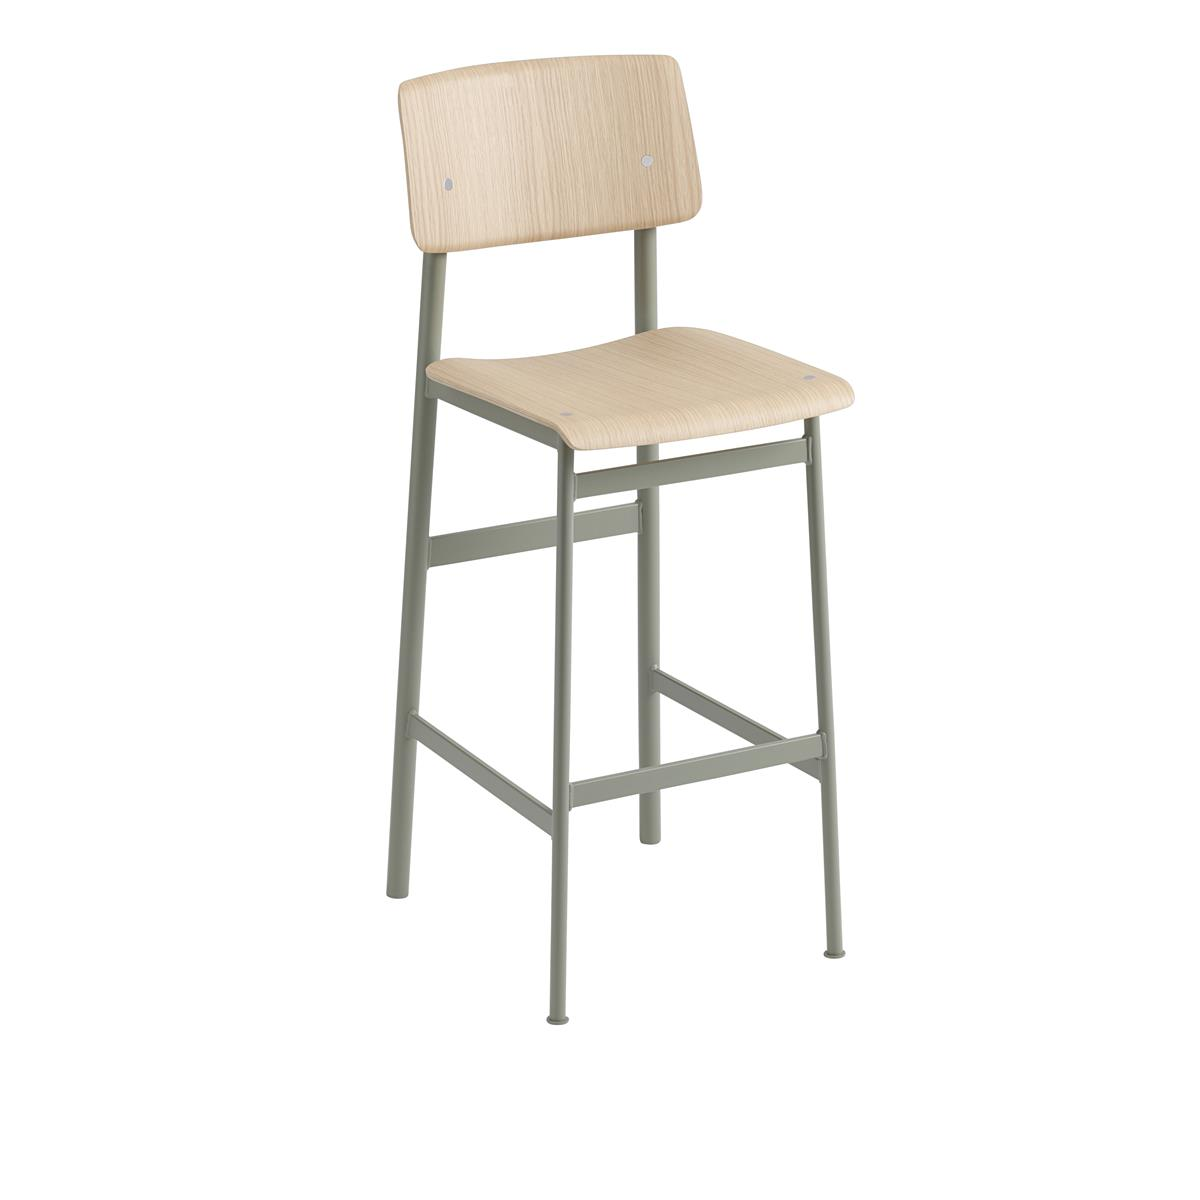 Loft Bar Stool H75 - Dusty Green & Oak